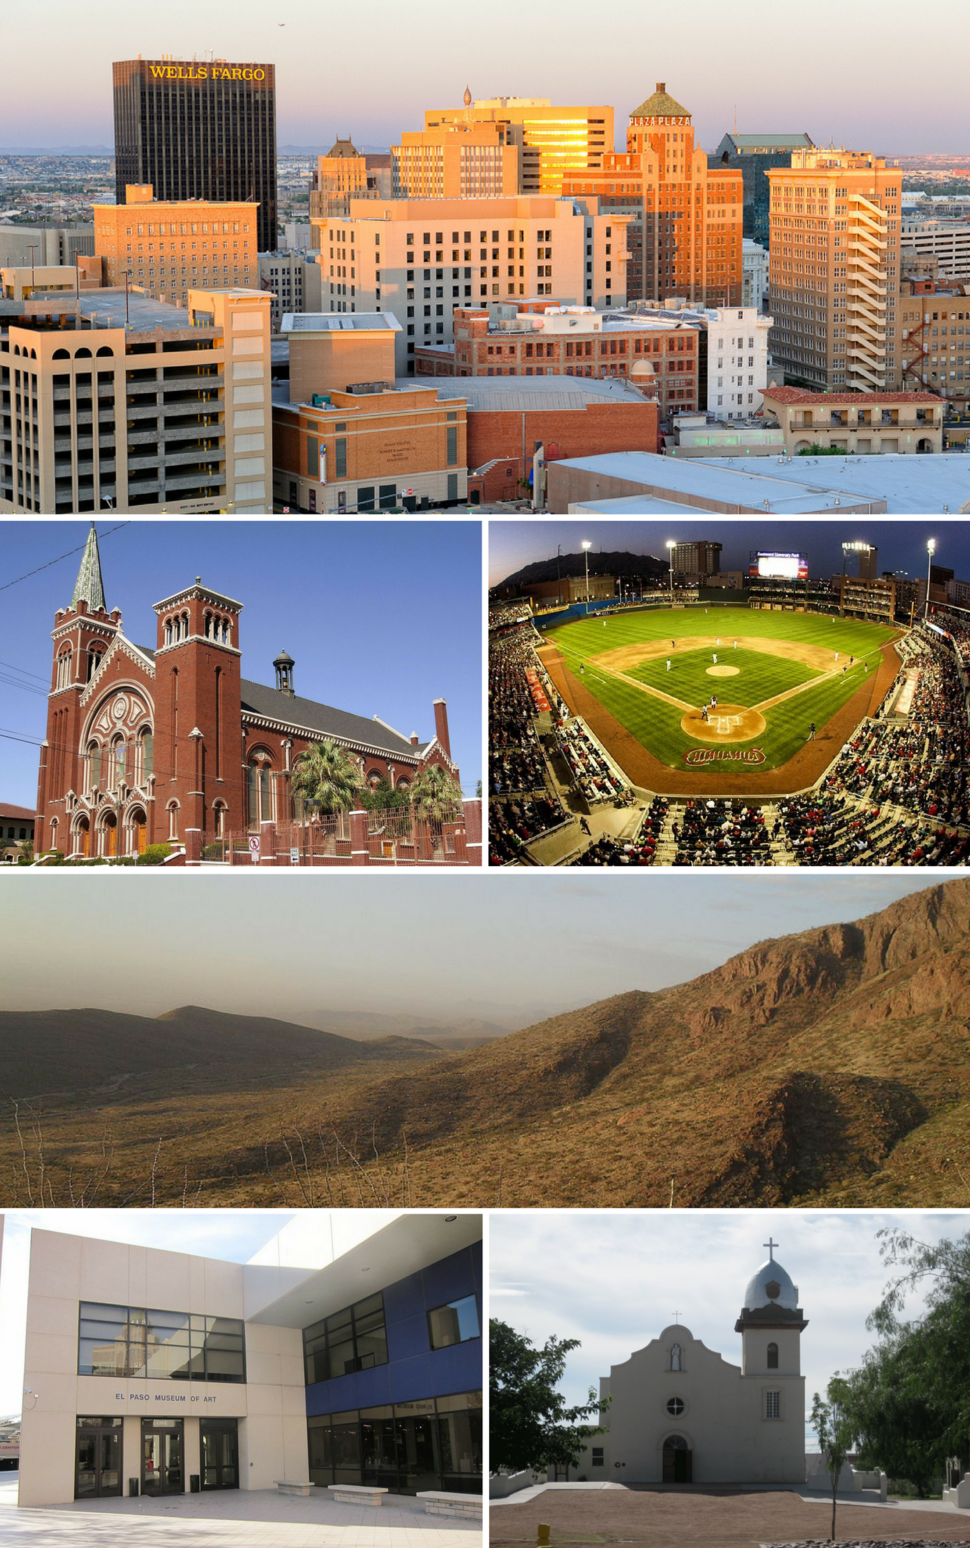 From top, left to right: El Paso skyline, Cathedral of Saint Patrick, Southwest University Park, Franklin Mountains, El Paso Museum of Art, Ysleta Mission